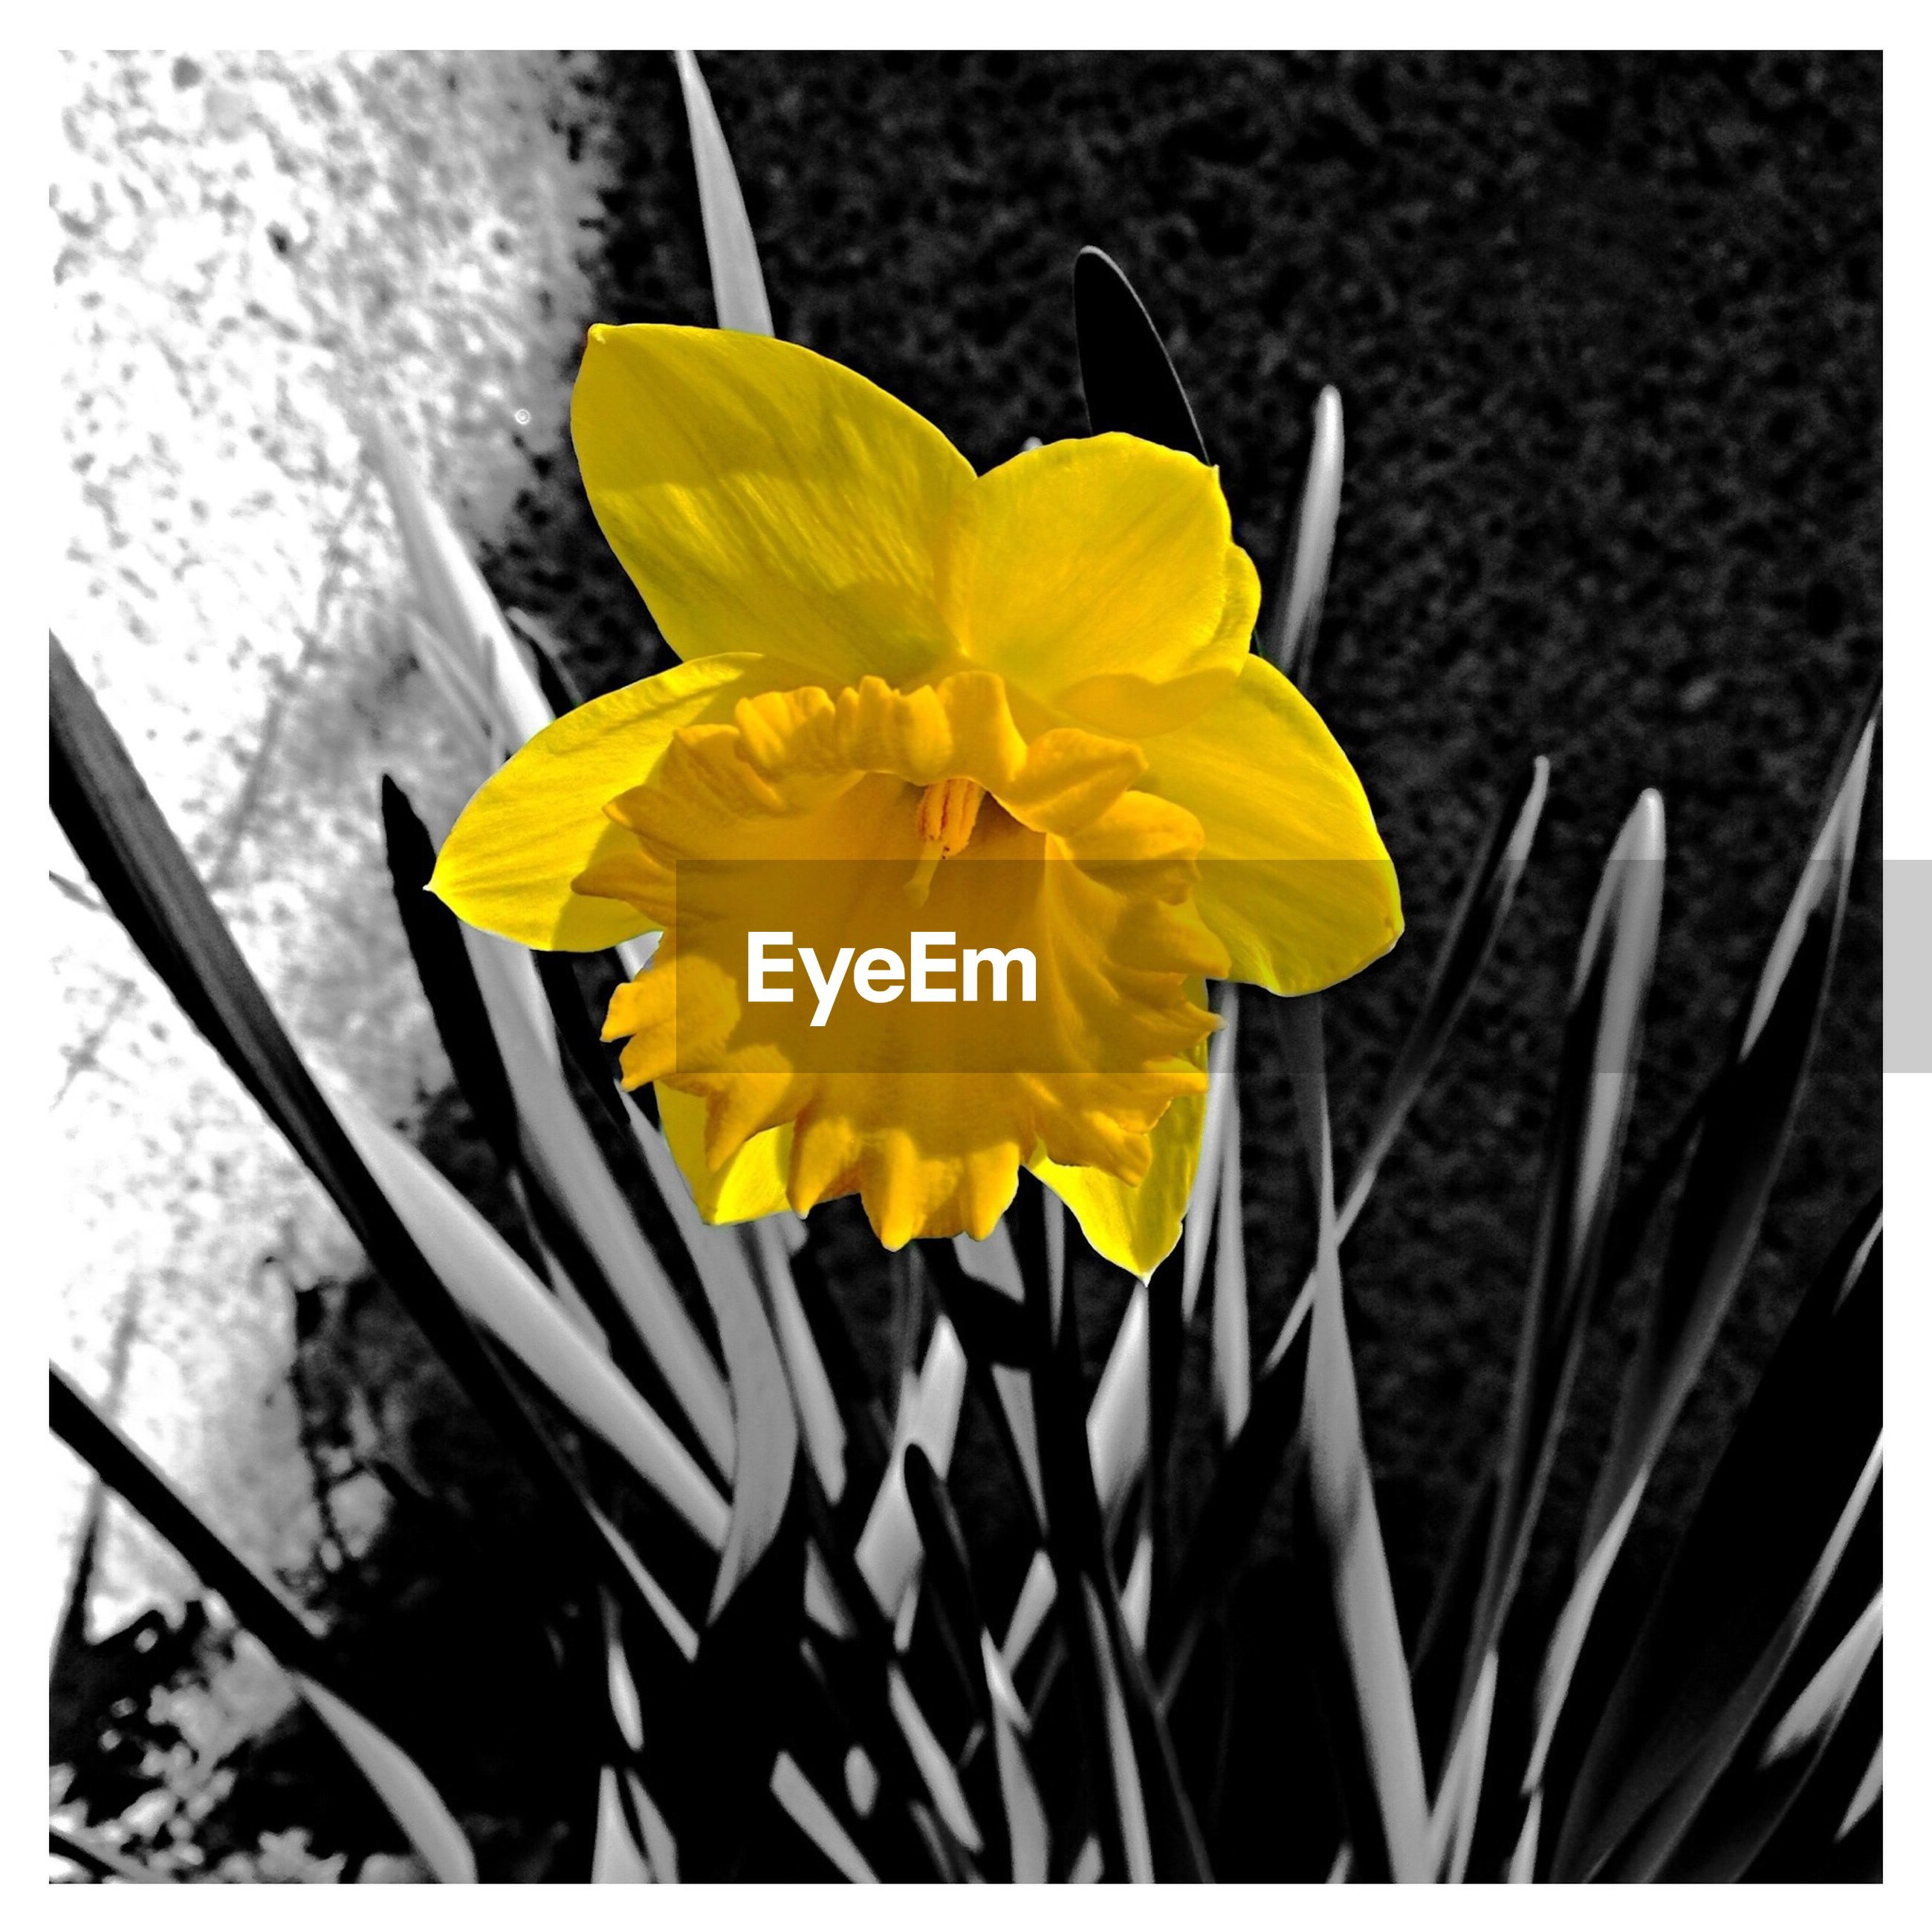 flower, yellow, petal, fragility, flower head, freshness, close-up, single flower, beauty in nature, growth, blooming, nature, plant, focus on foreground, transfer print, in bloom, day, high angle view, outdoors, auto post production filter